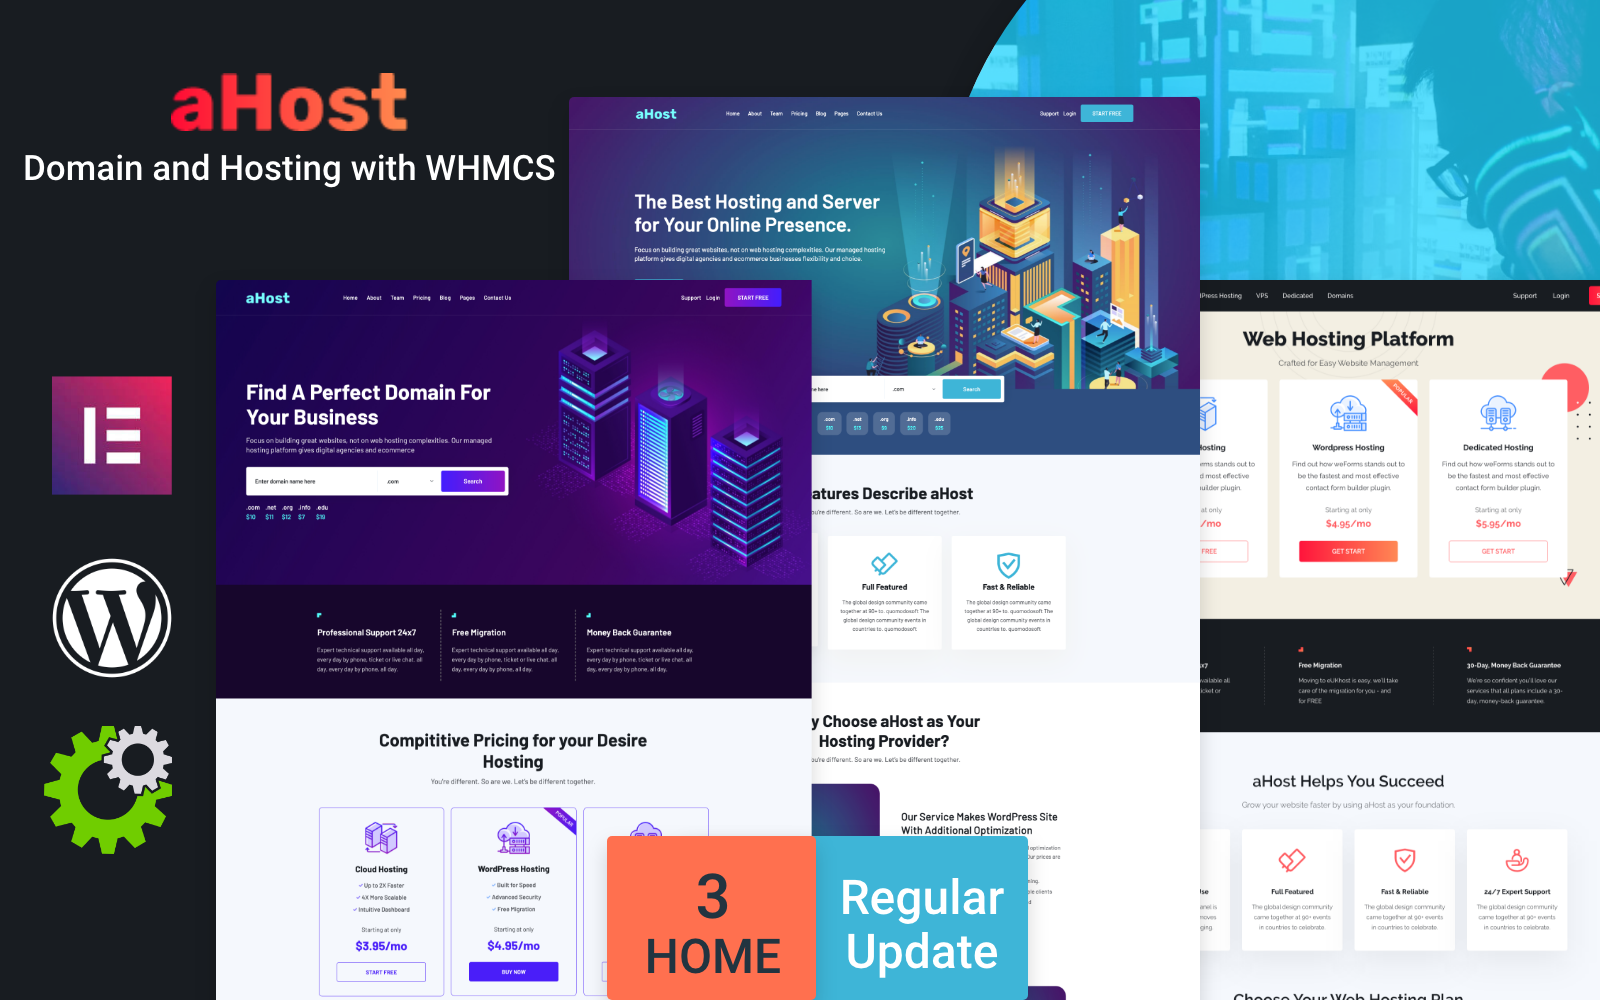 Motyw WordPress aHost - Domain and Hosting theme with WHMCS Support #136547